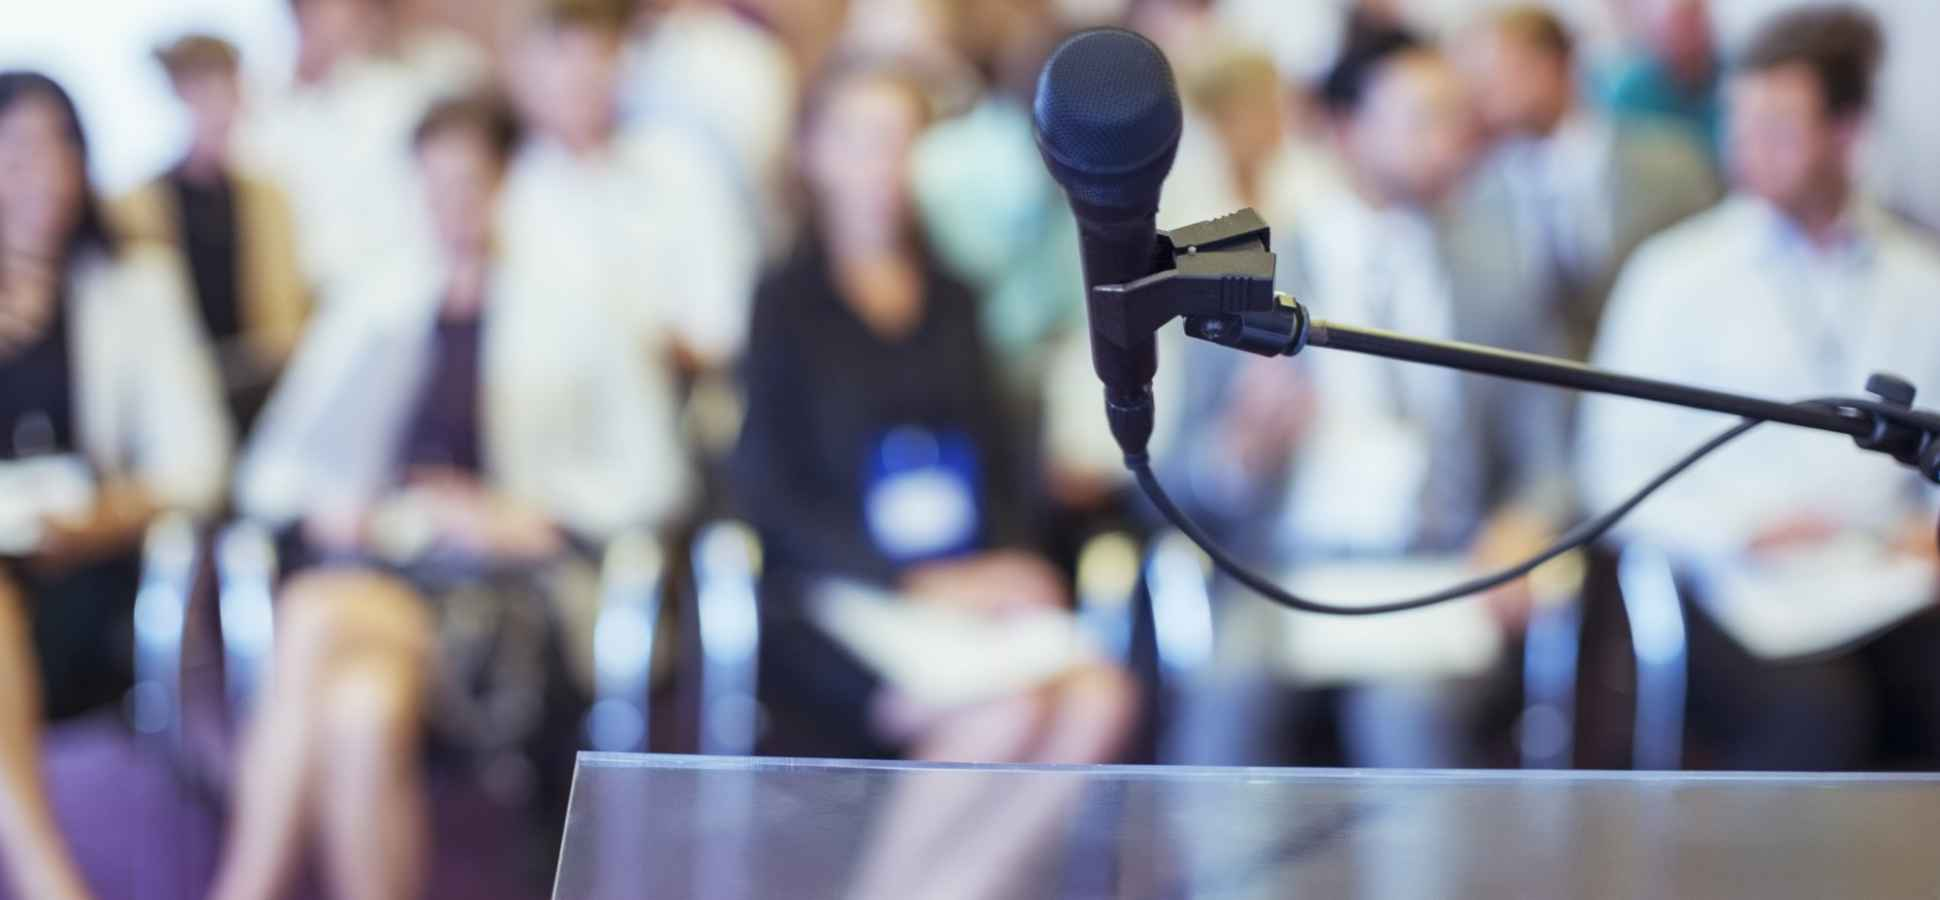 Improv-ing Your Public Speaking Skills